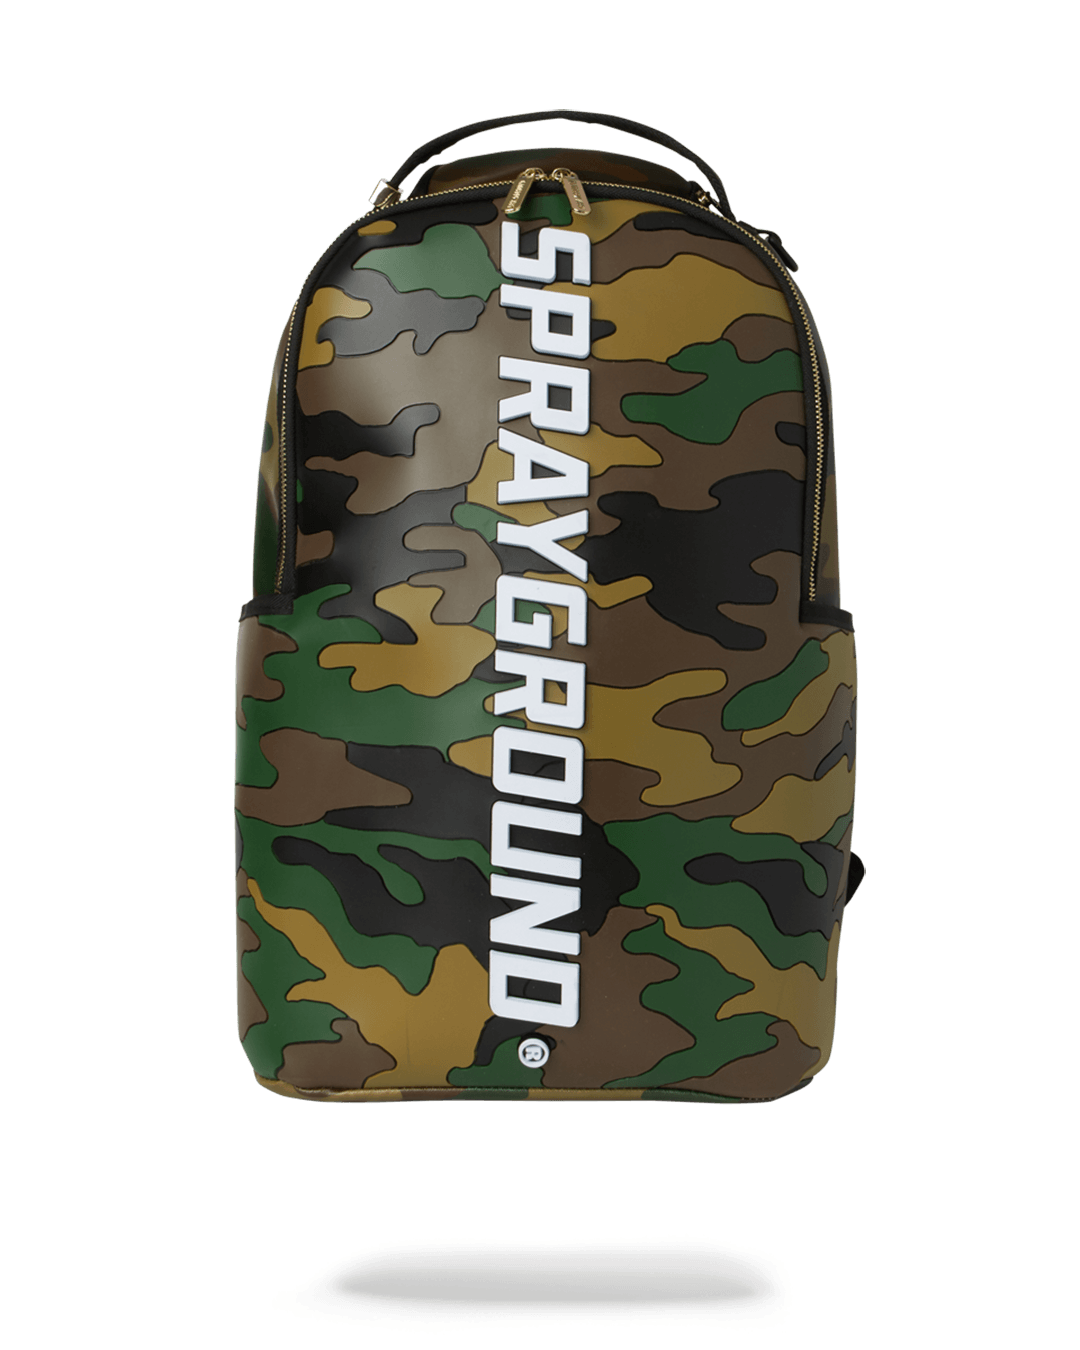 front view: camo print bag made of premium rubber. vertical sprayground text logo going down middle of bag.